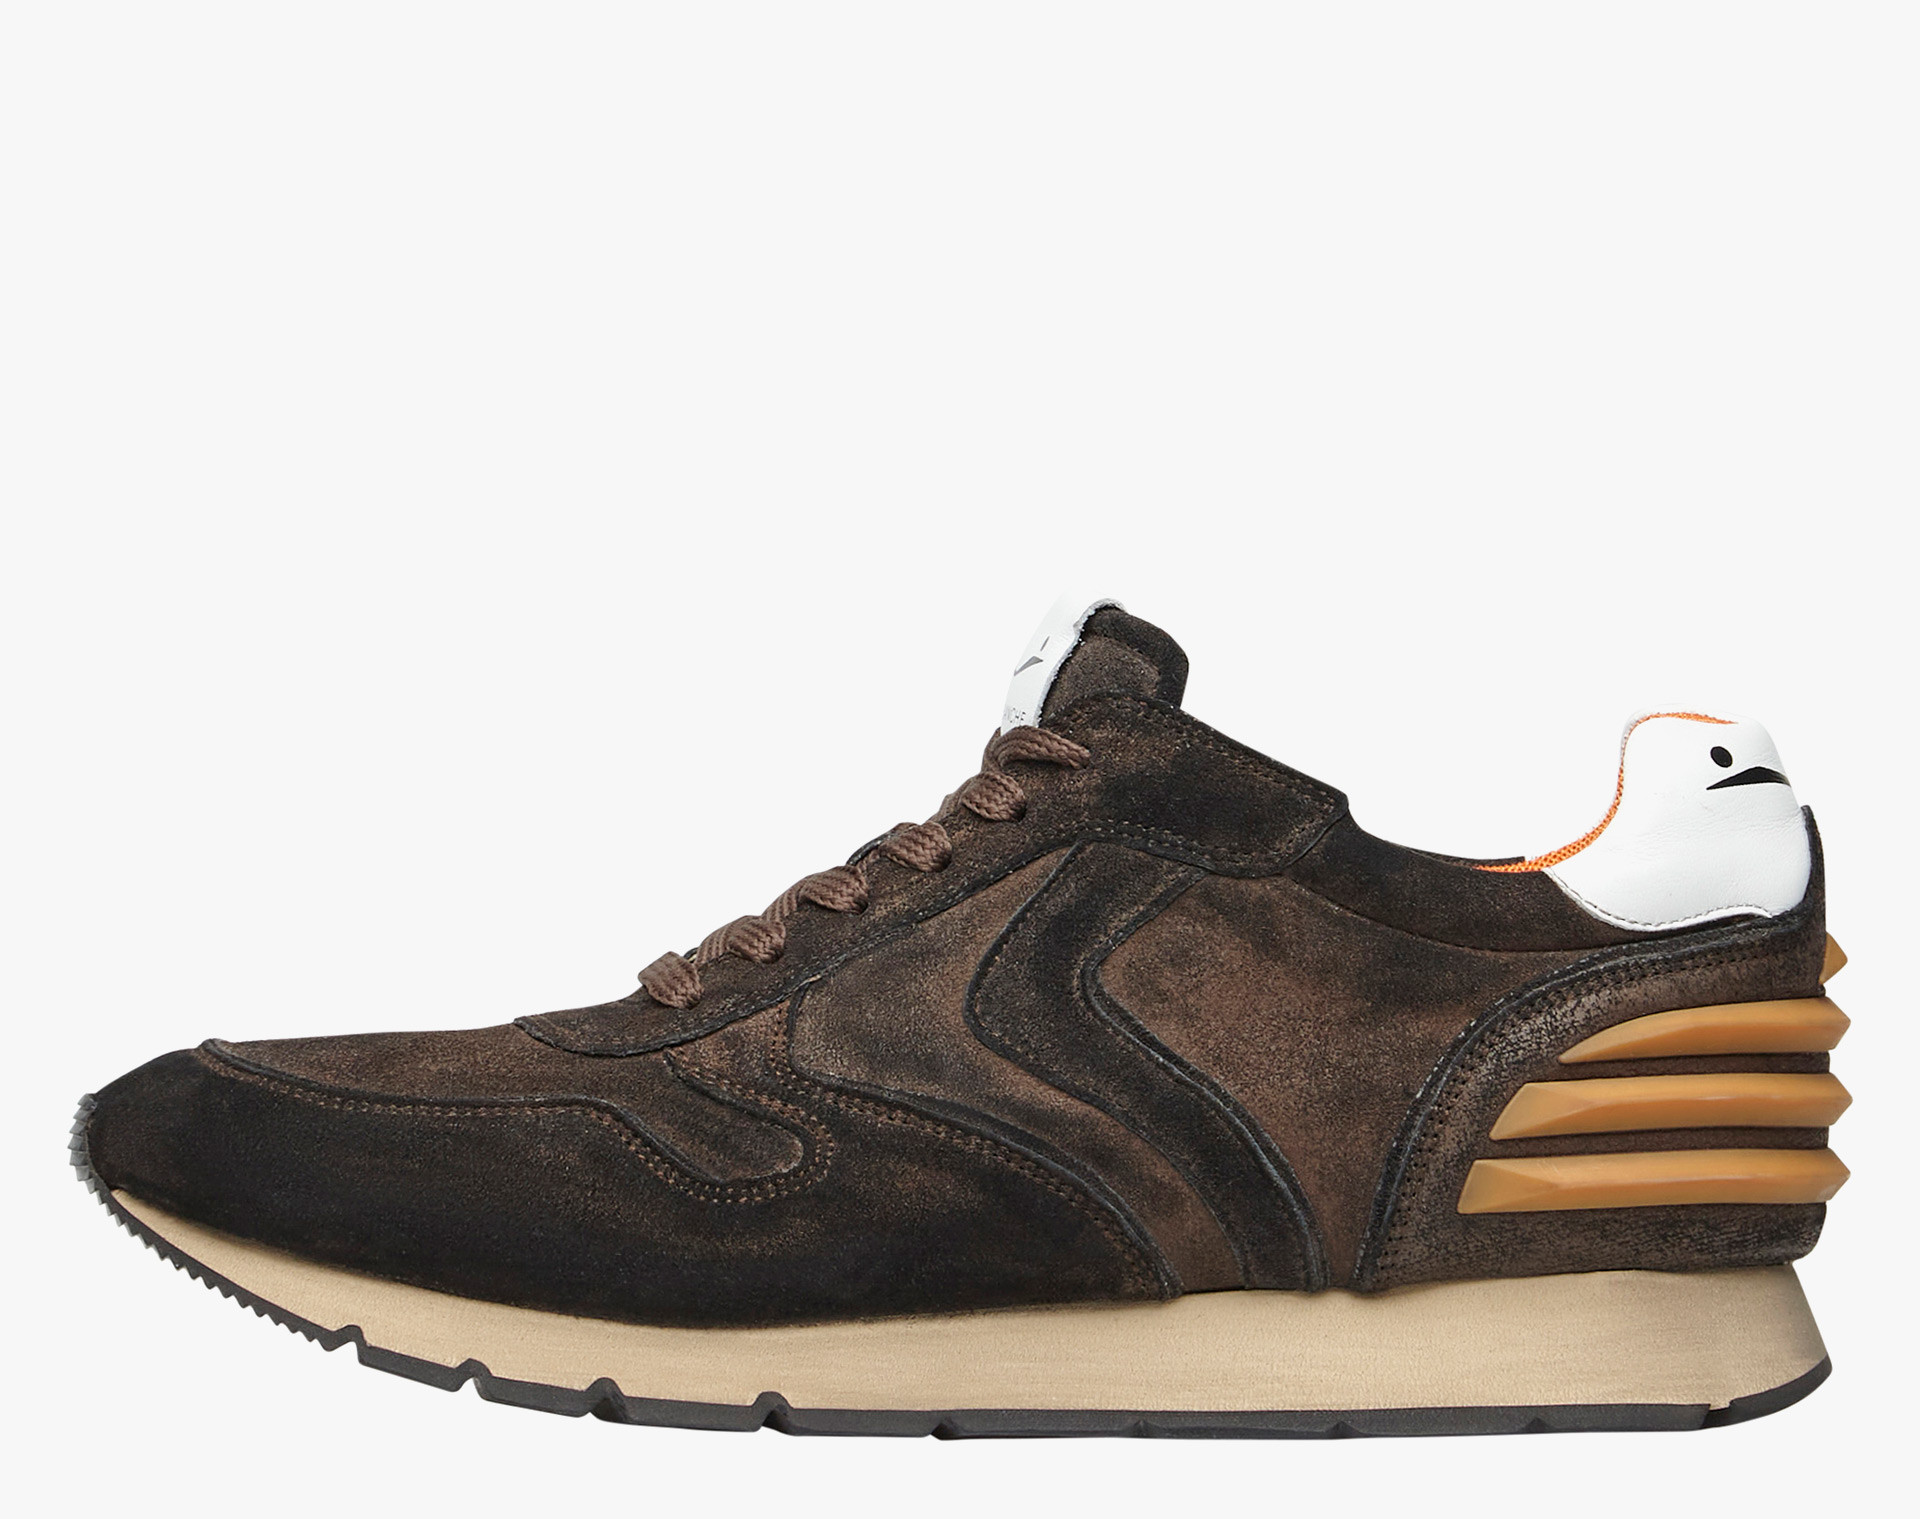 LIAM POWER - SNEAKERS IN PELLE - MARRONE/ARANCIONE